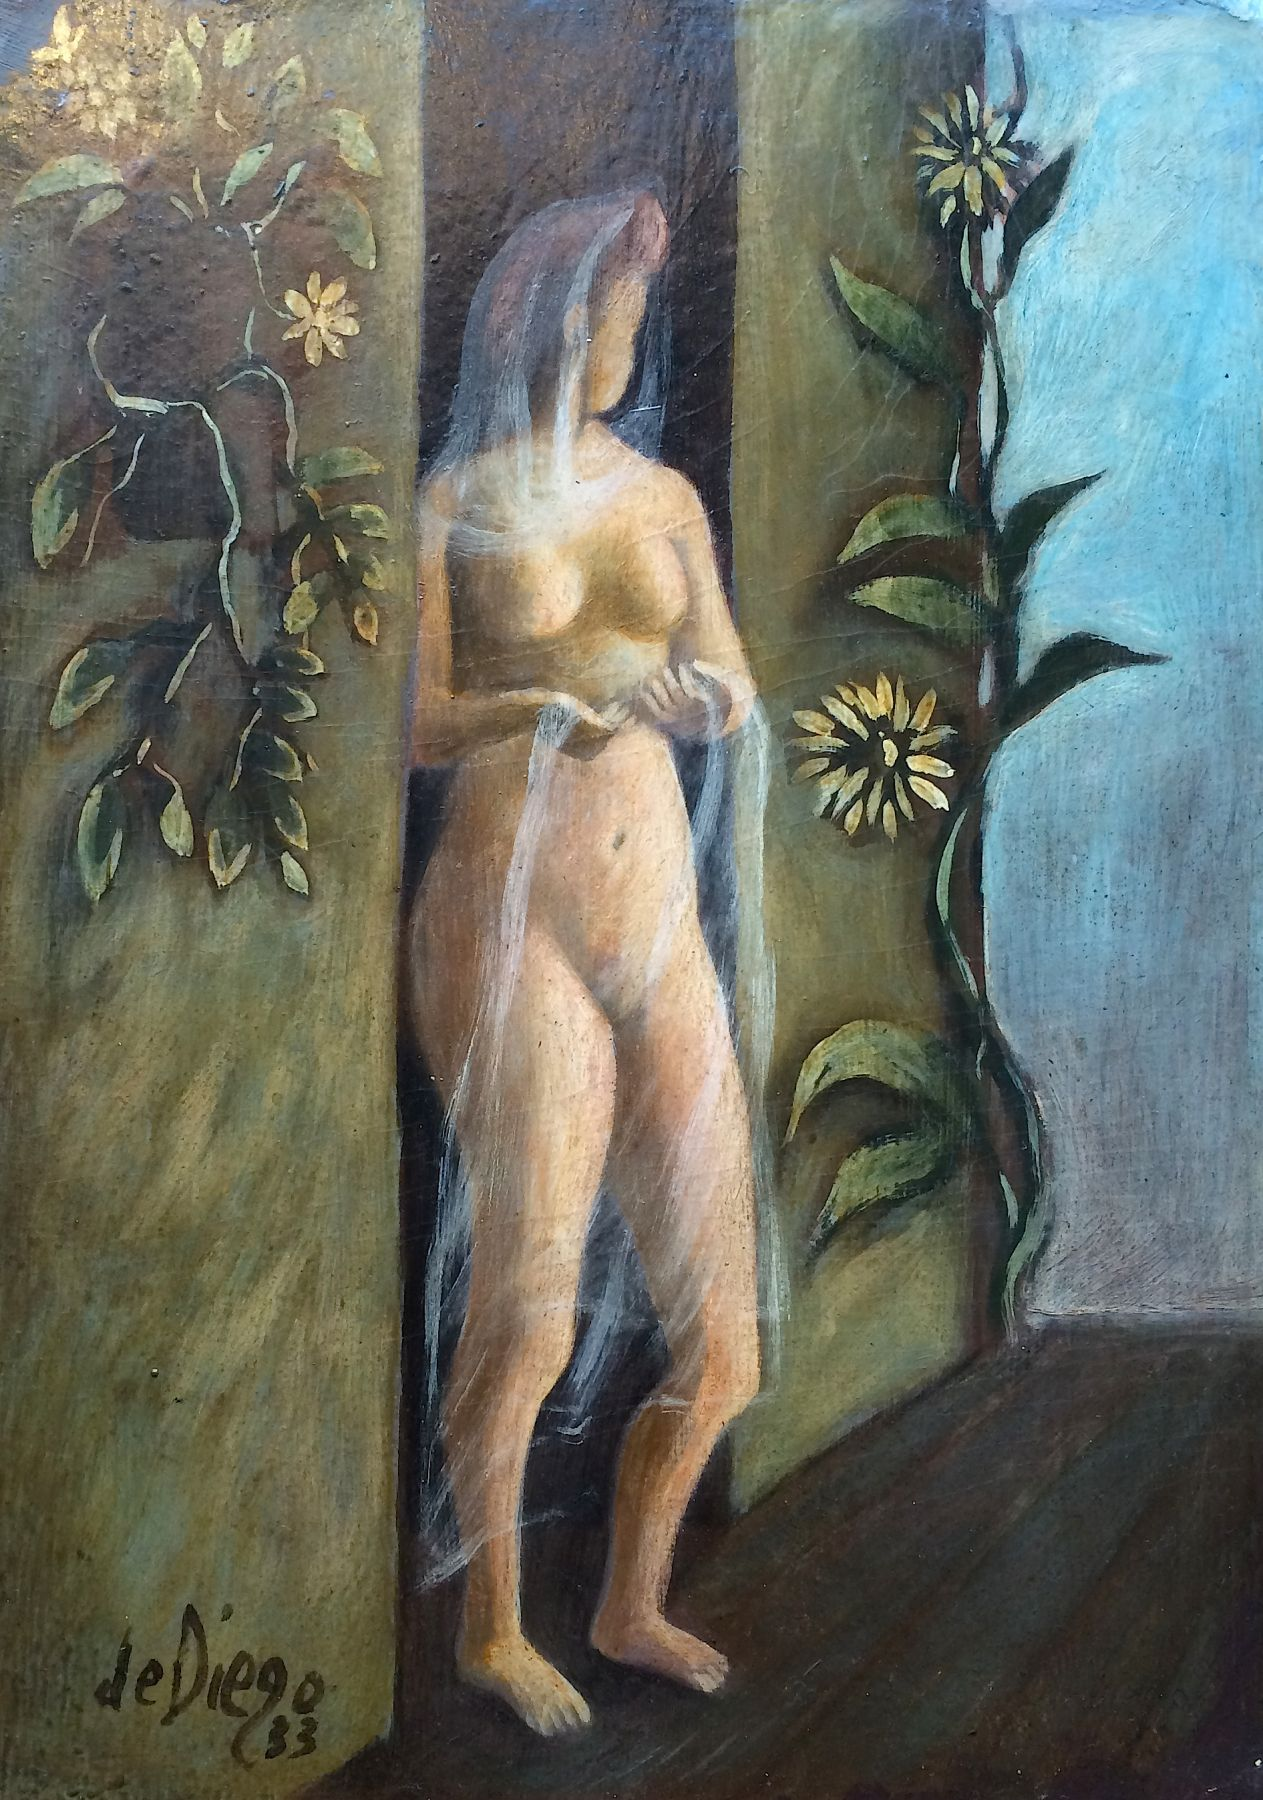 Julio De Diego, Girl in Doorway